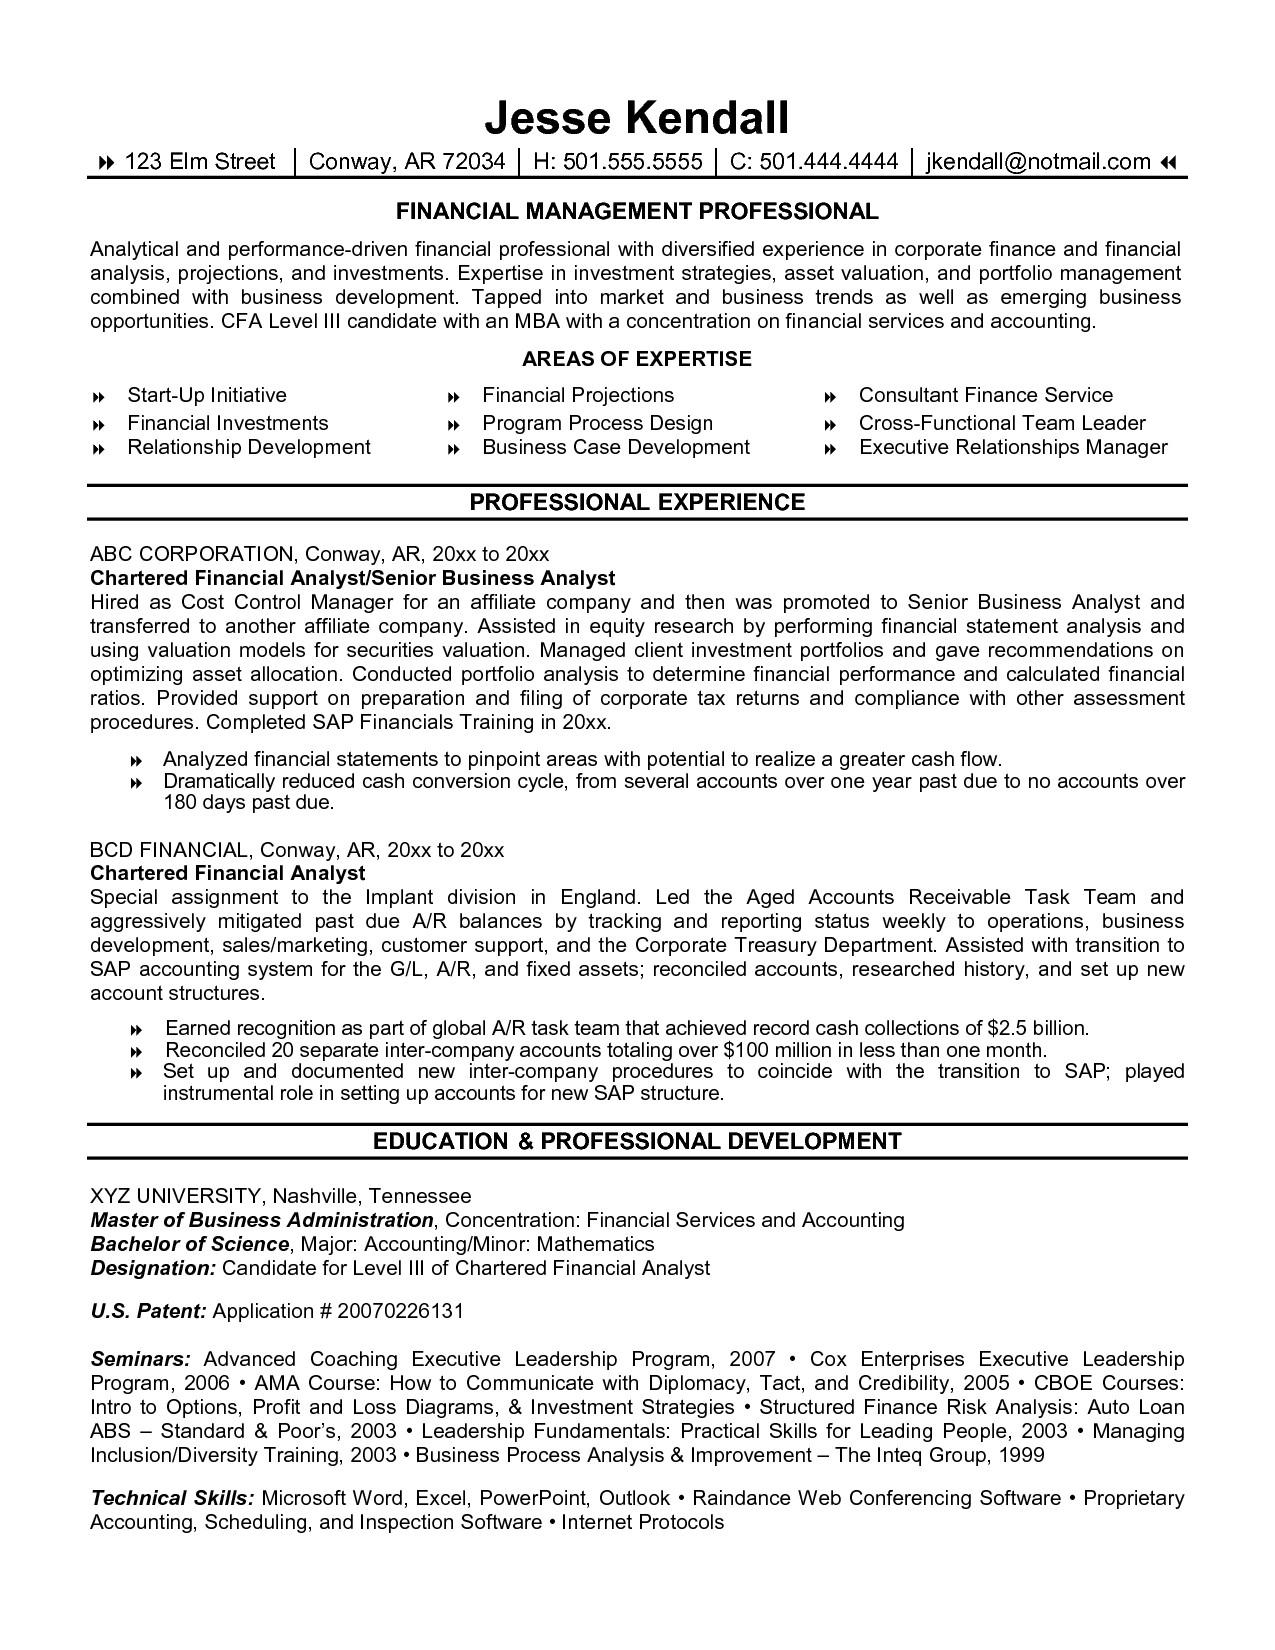 Accounting Analyst Resume Interesting Resume Financial Analyst Best Format Amazing Finance Examples .